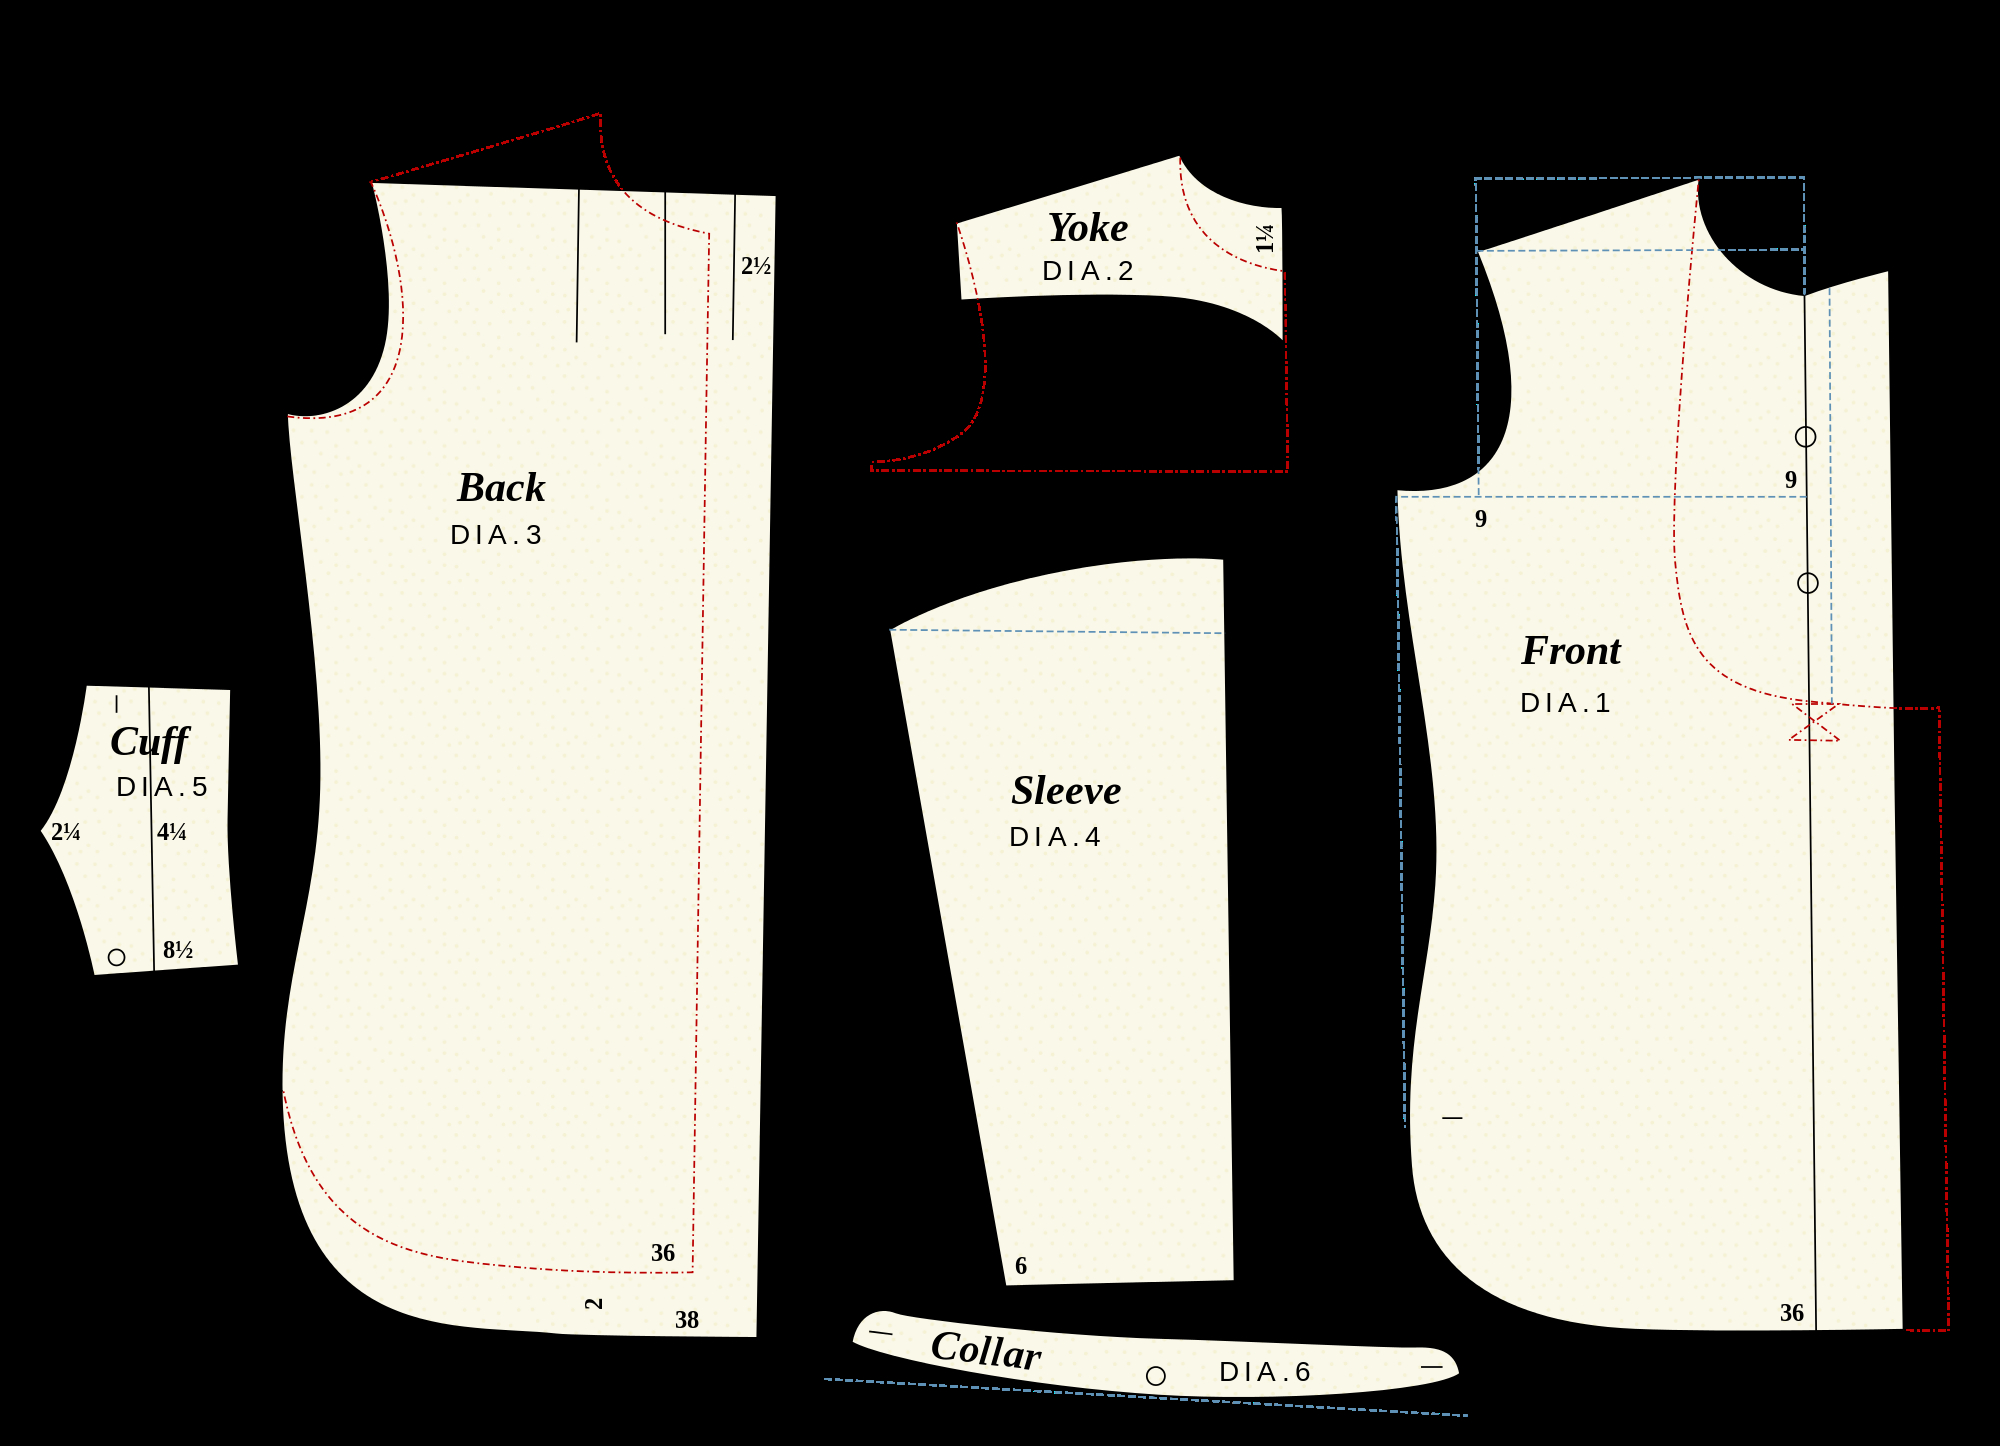 Sewing Tshirt Pattern Filethe Shirt System Sewing Patternsvg Wikimedia Commons